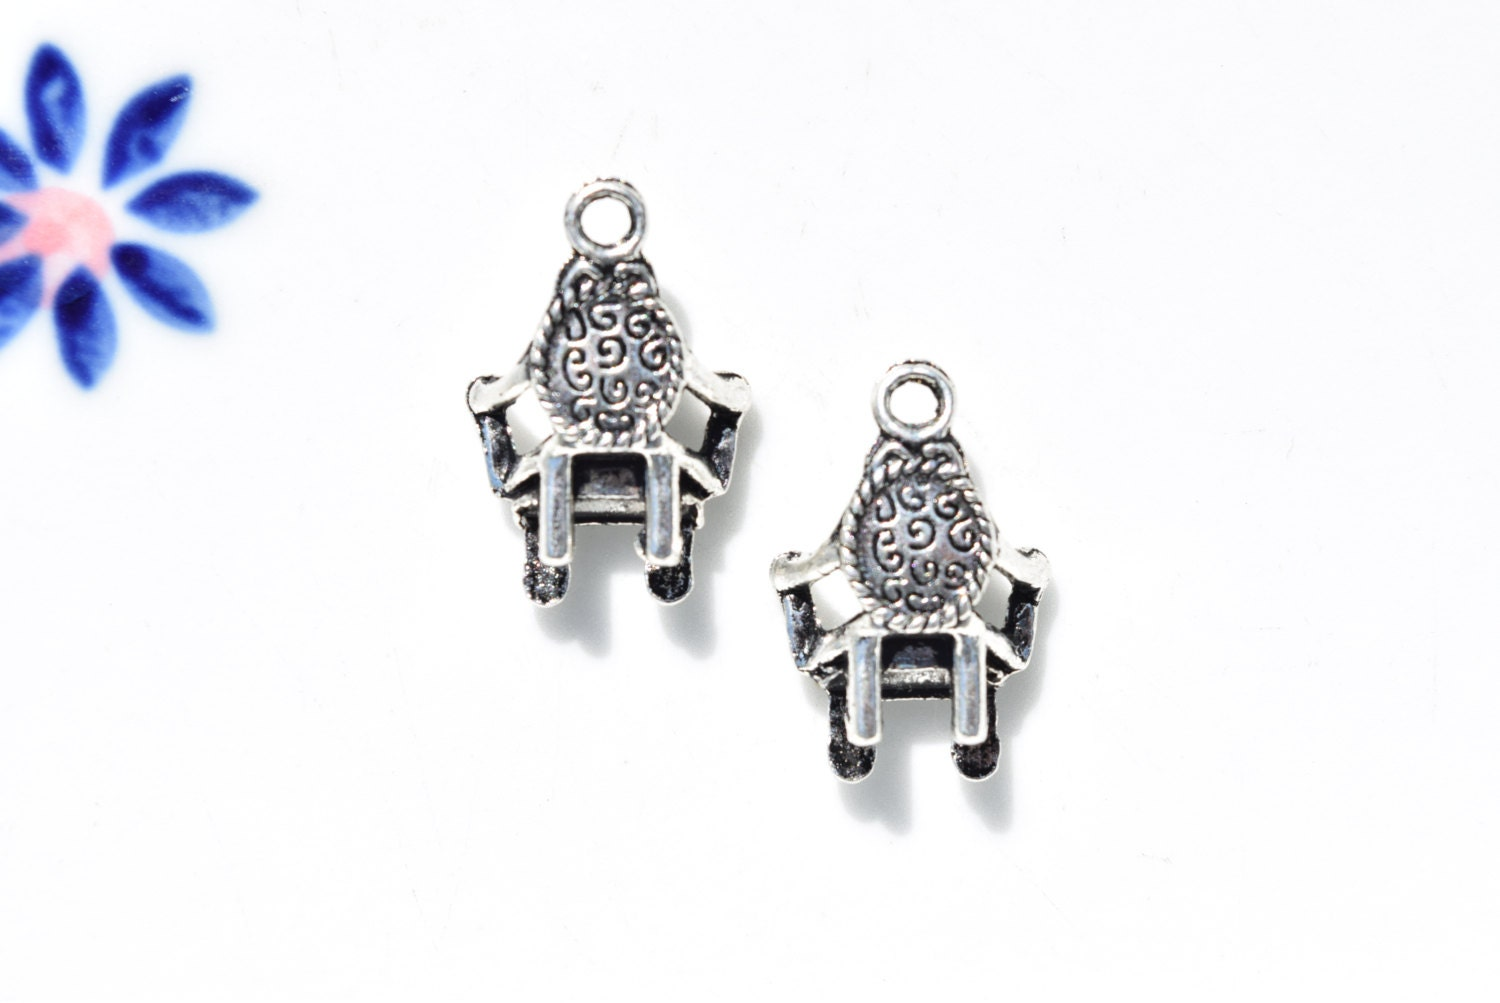 5 Chair Charms Arm Chair Charms Furniture Charms